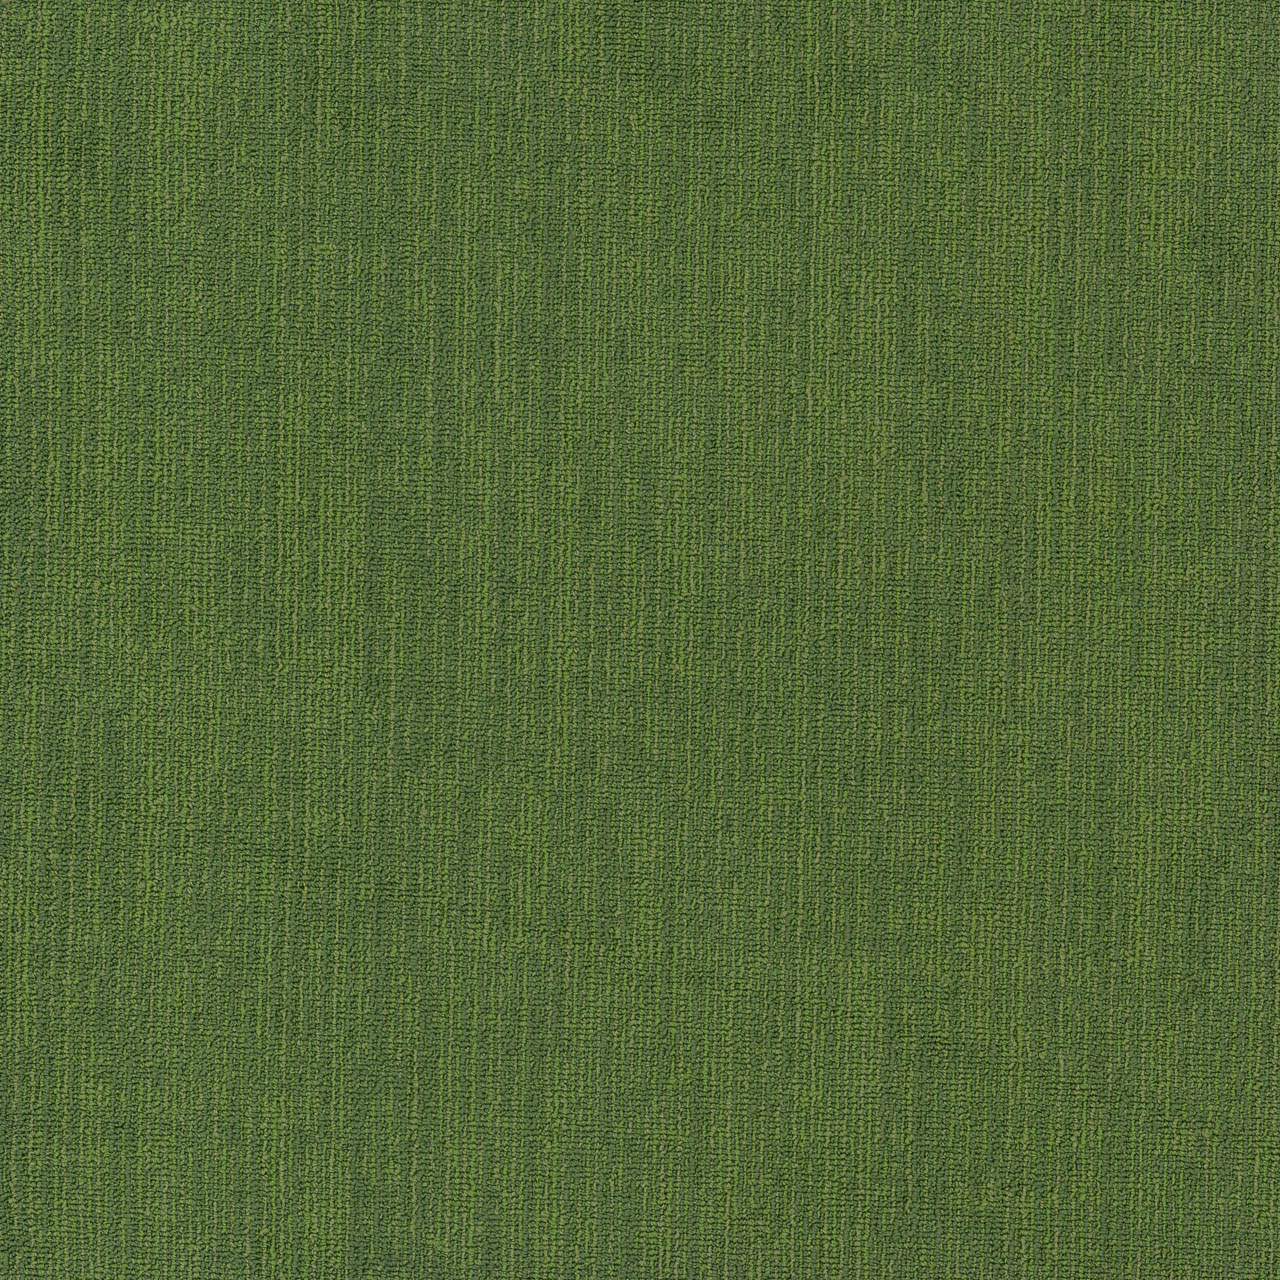 Amtico International: Colour Anchor Meadow